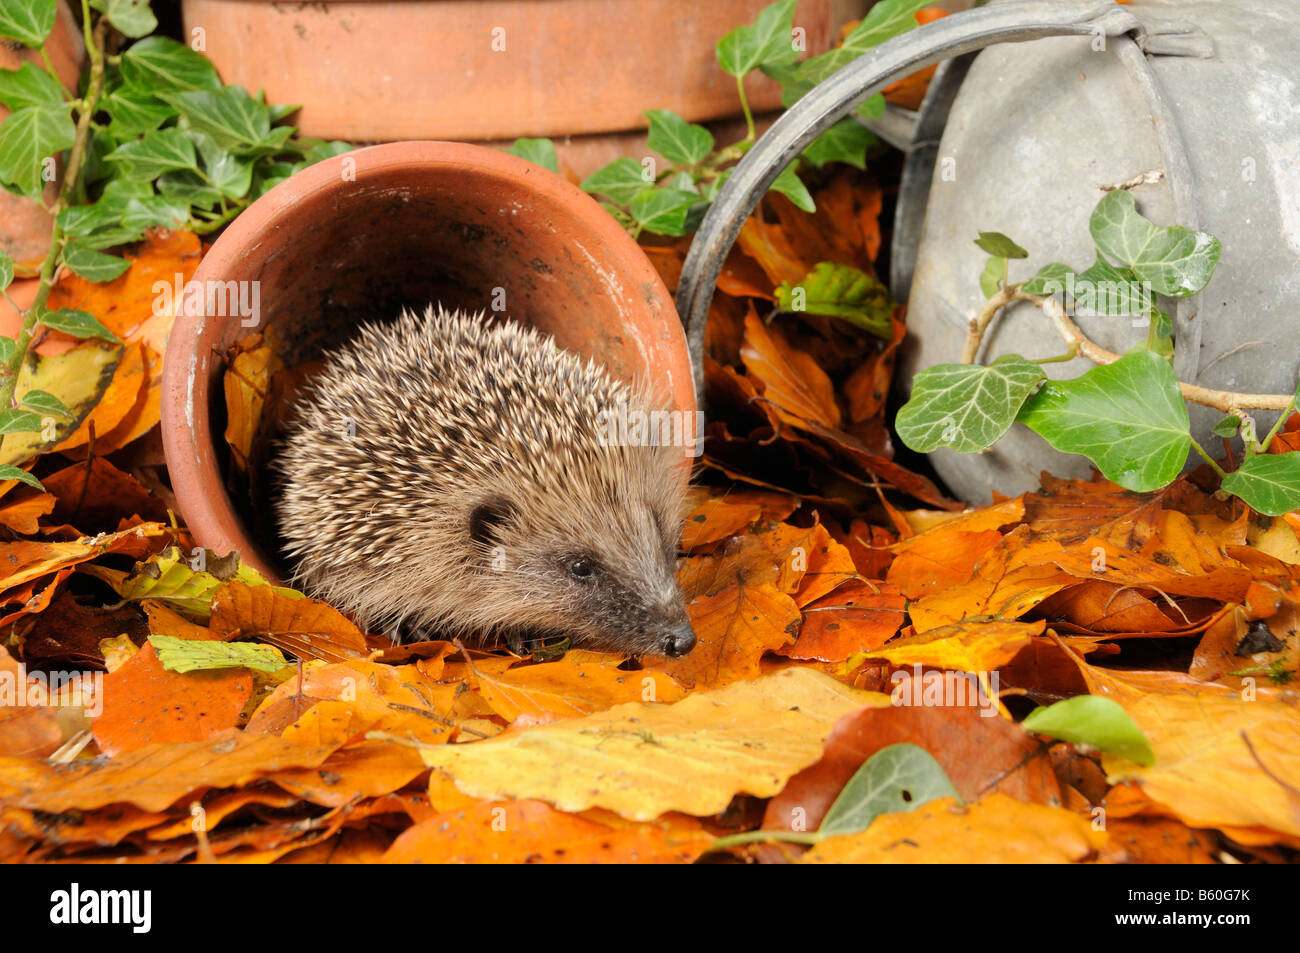 Hedgehog erinaceus europaeus foraging for food in urban garden amongst terracotta pots and autumn leaves UK Stock Photo